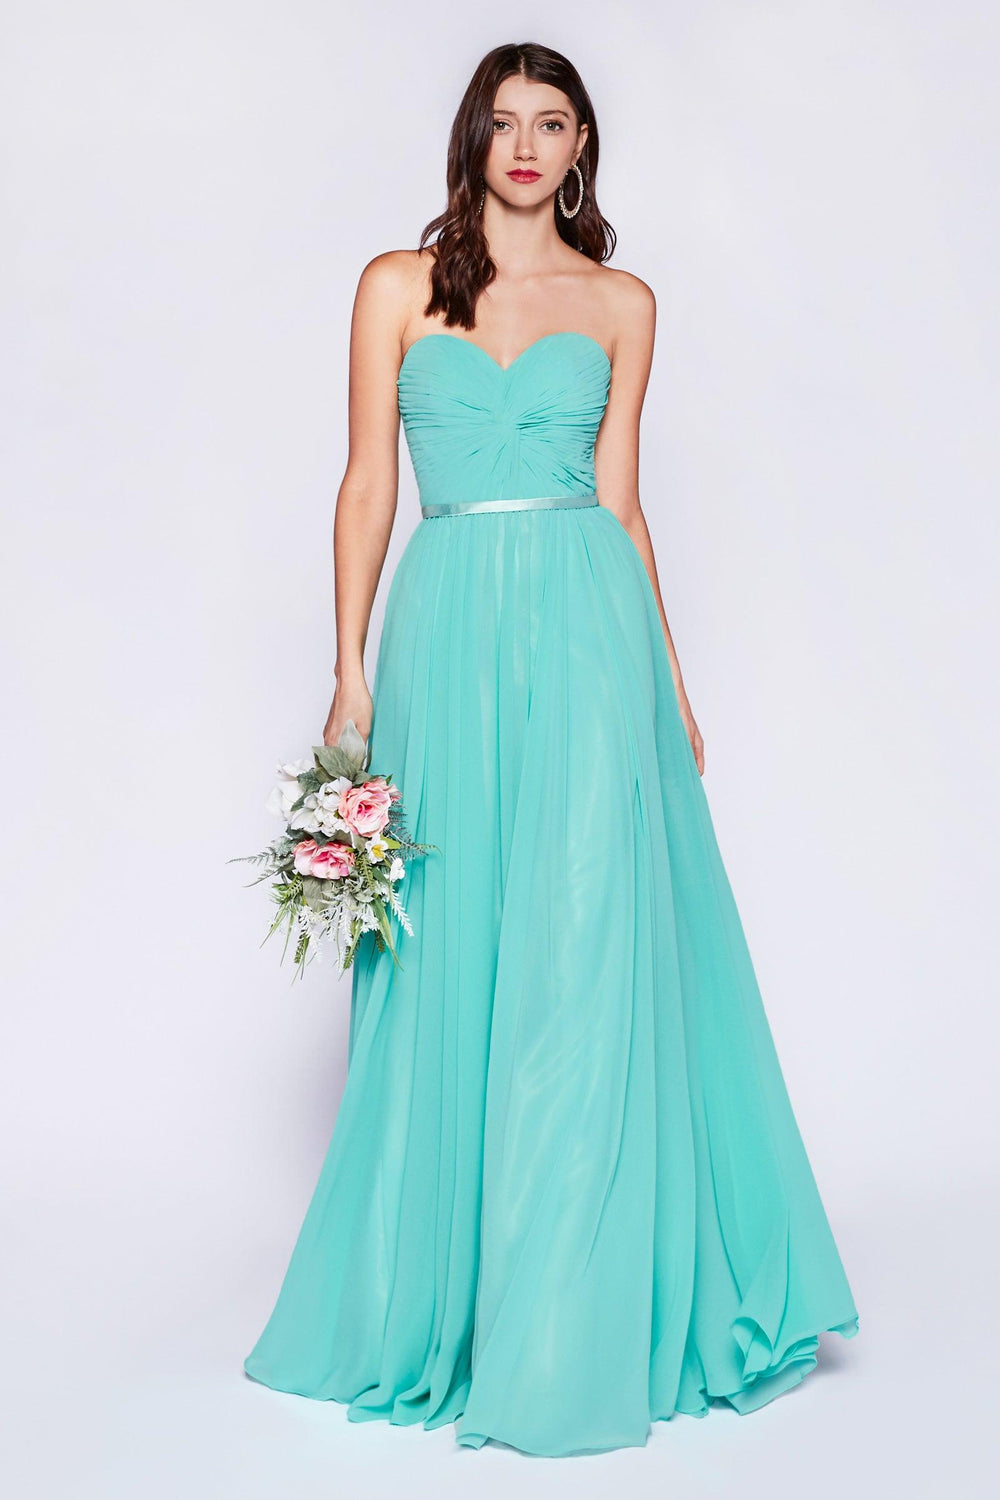 Strapless Chiffon Empire Waist Prom Dress - The Dress Outlet Mint